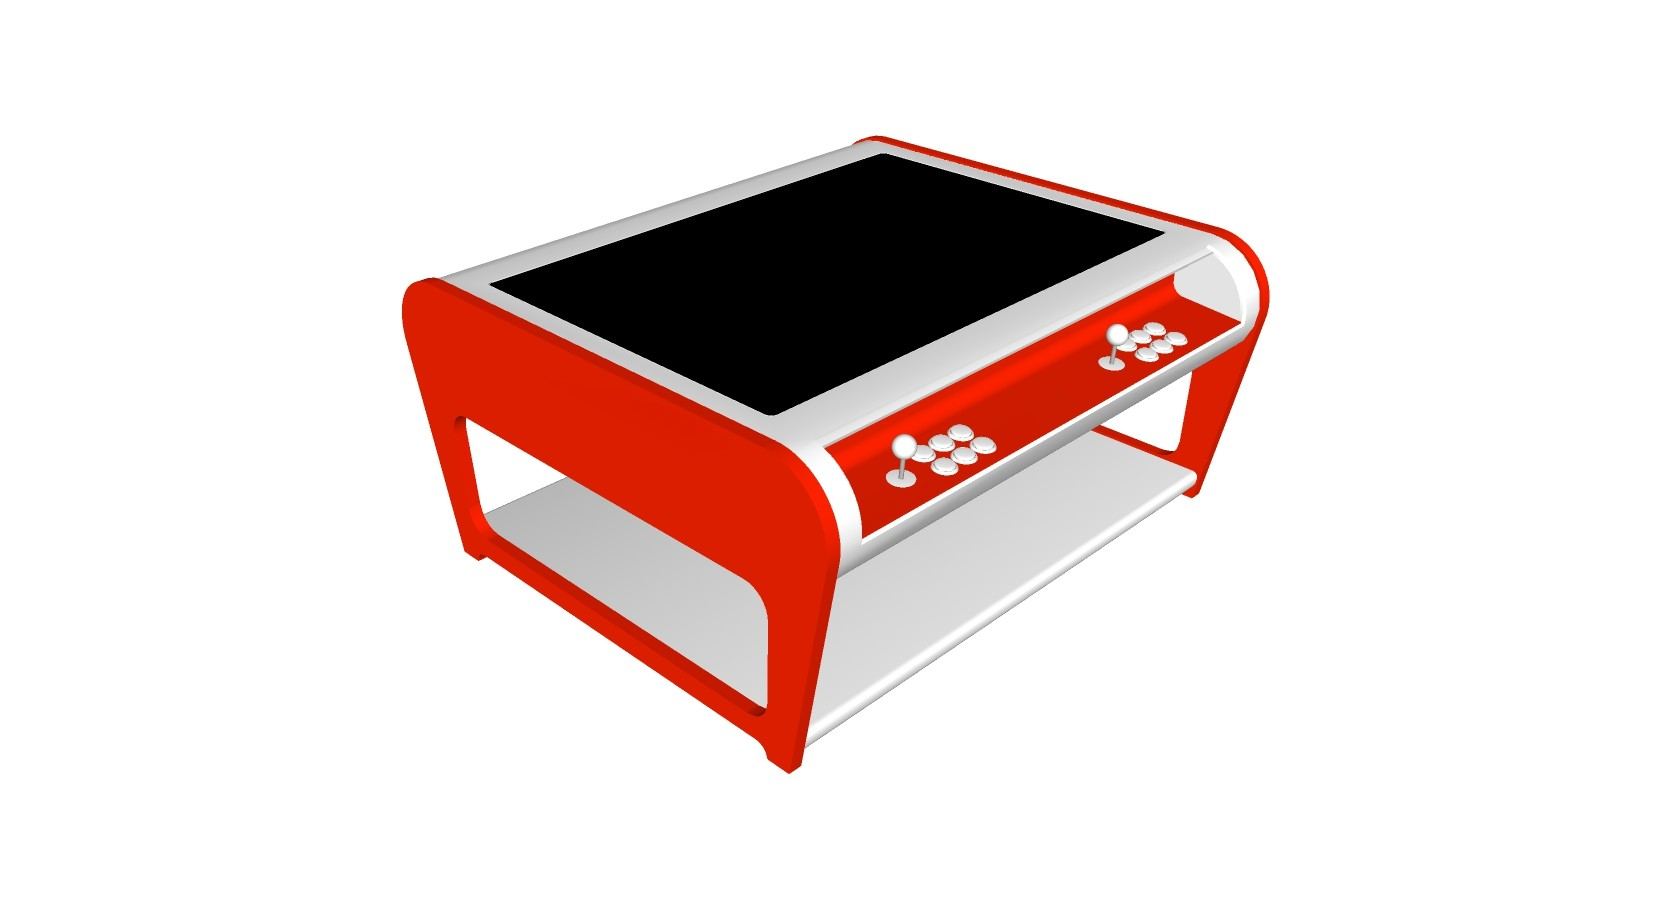 Modern Coffee Table Style Arcade Machine With 960 Plus Games - red